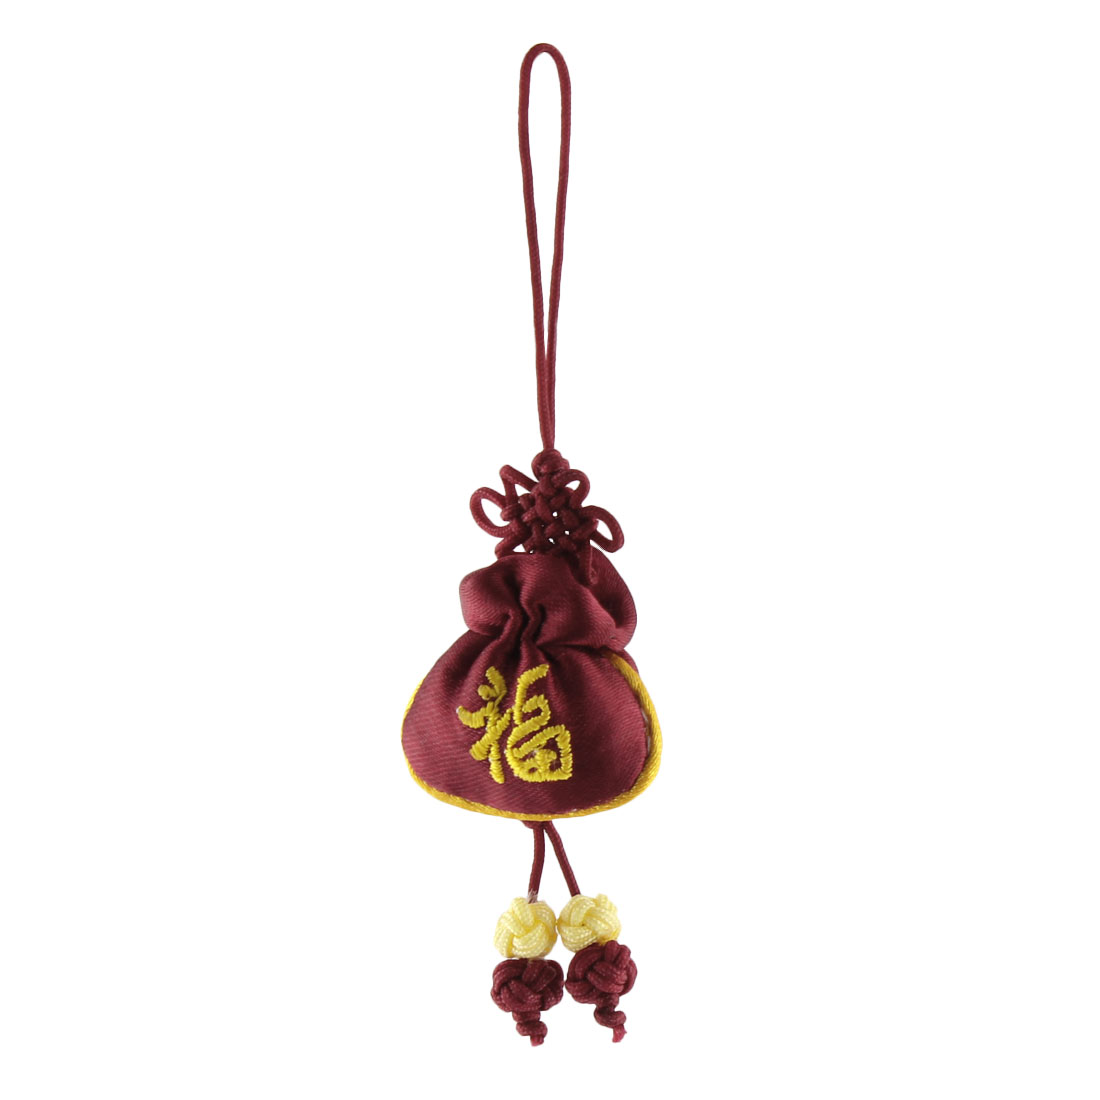 Household Mini Chinese Embroidery Luck Hanging Sachet Pendant Knot Dark Red